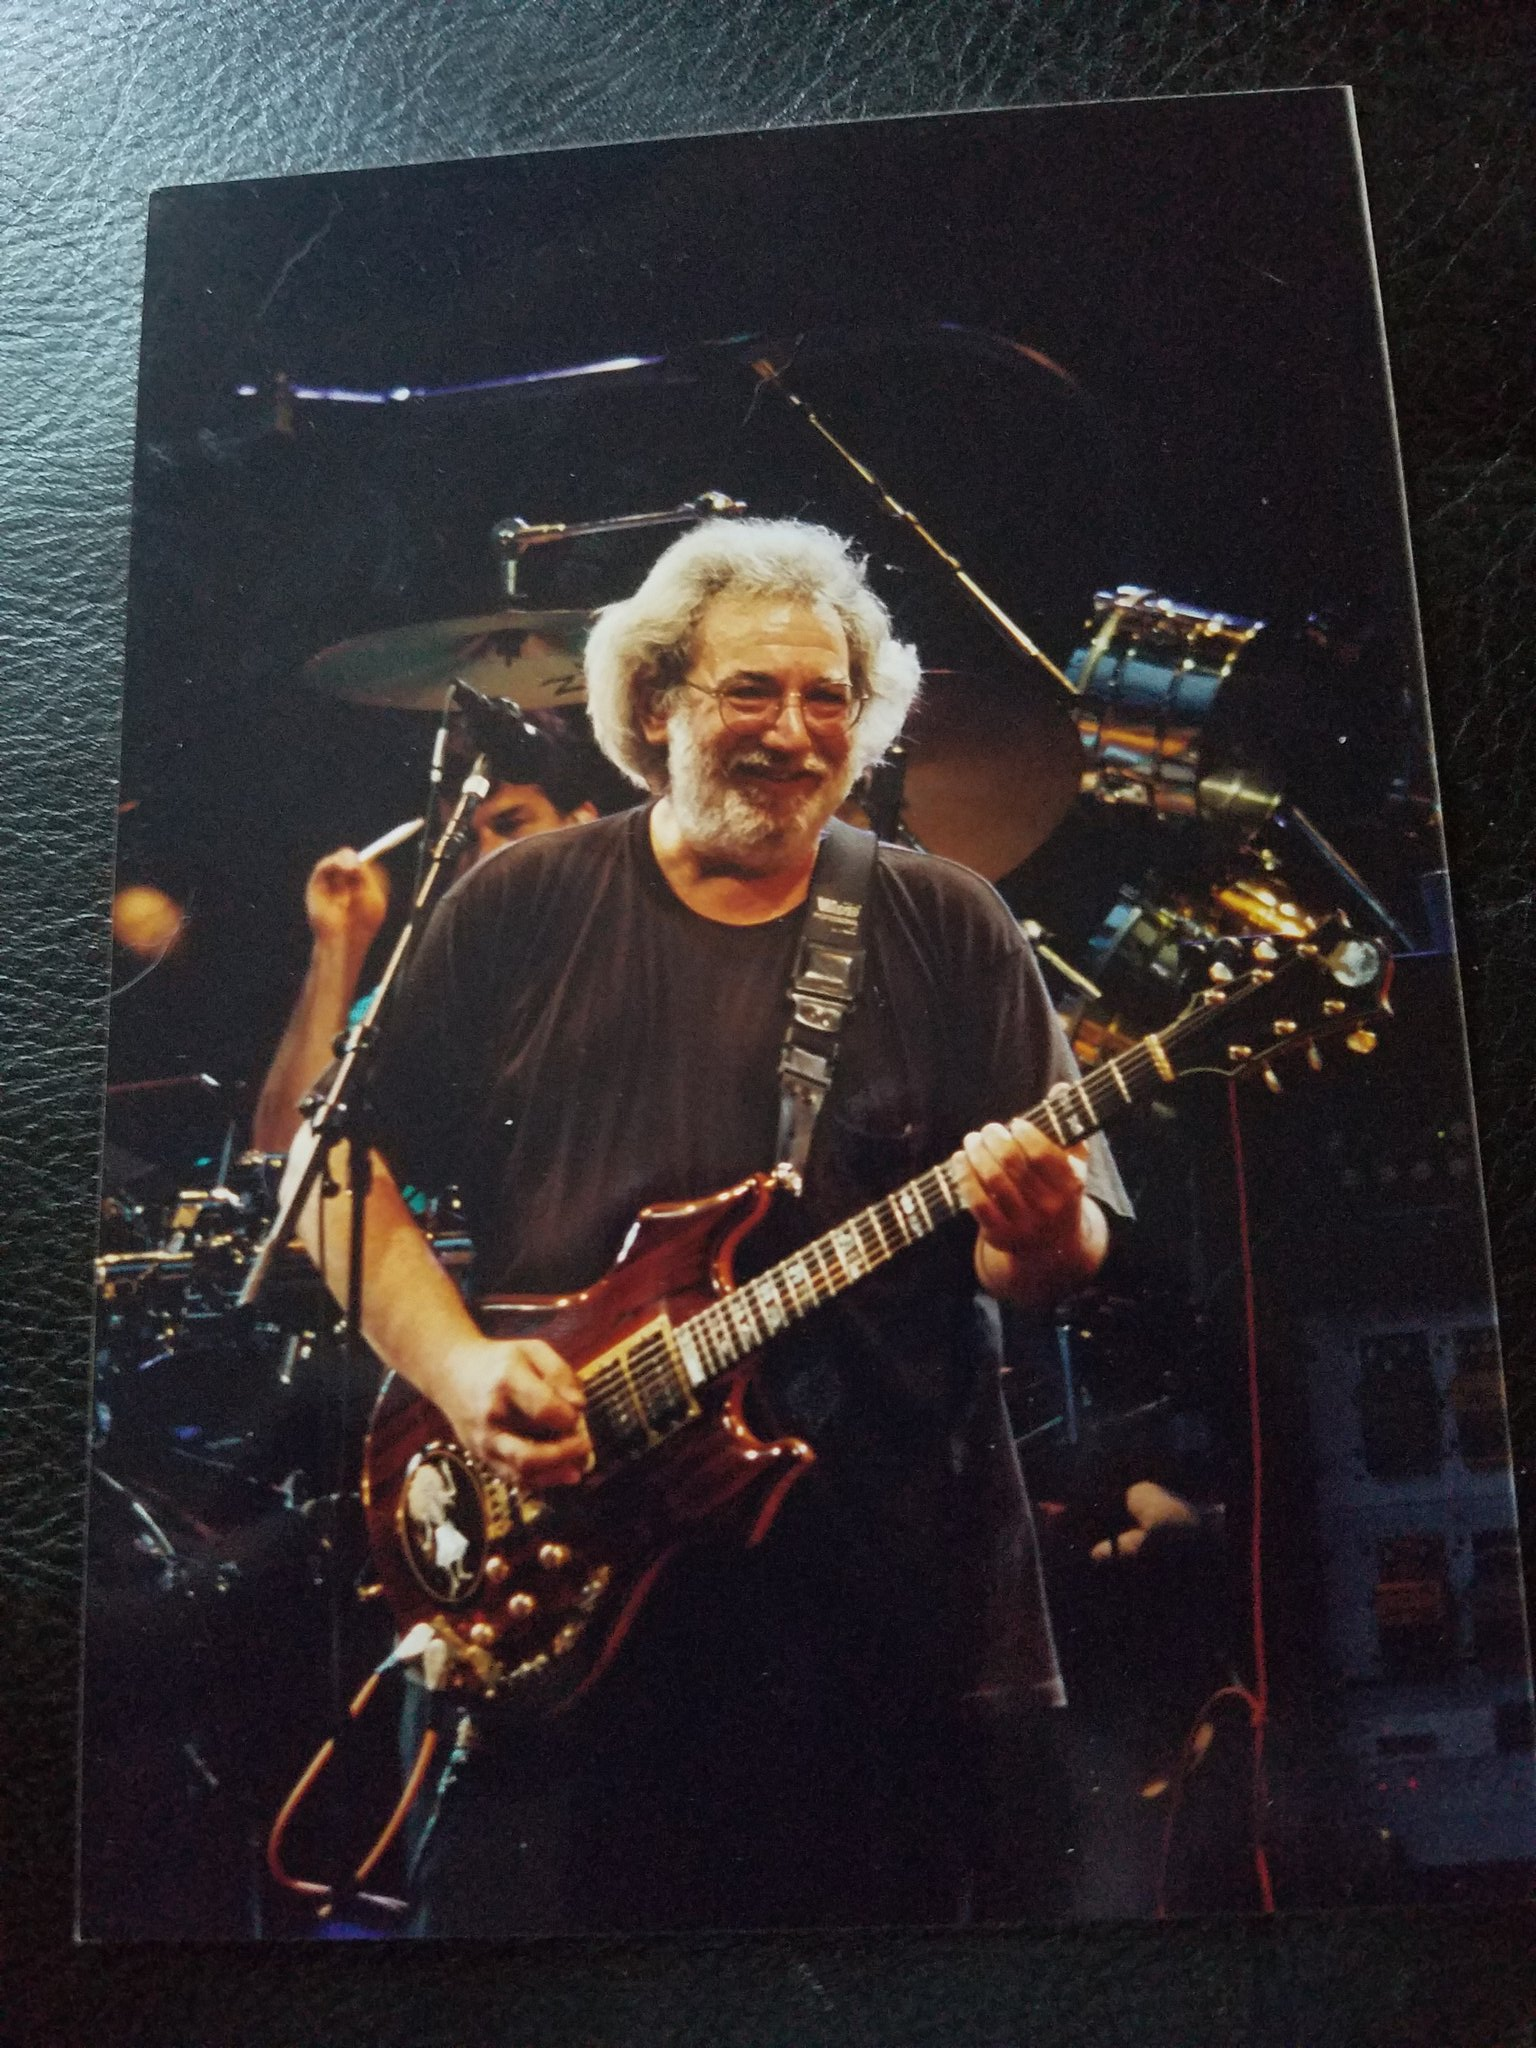 Happy birthday Jerry Garcia! One of the few pictures I took of Jerry Garcia. He turned to me and smiled!